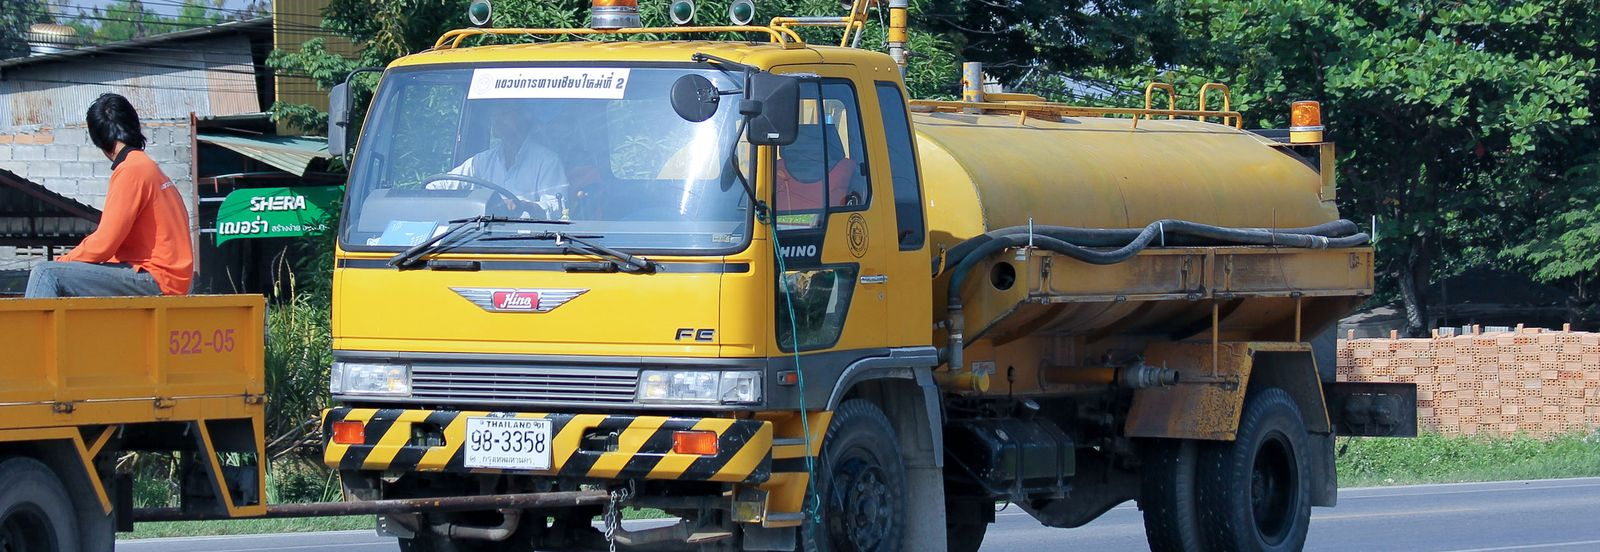 WATER OR FUEL SERVICES